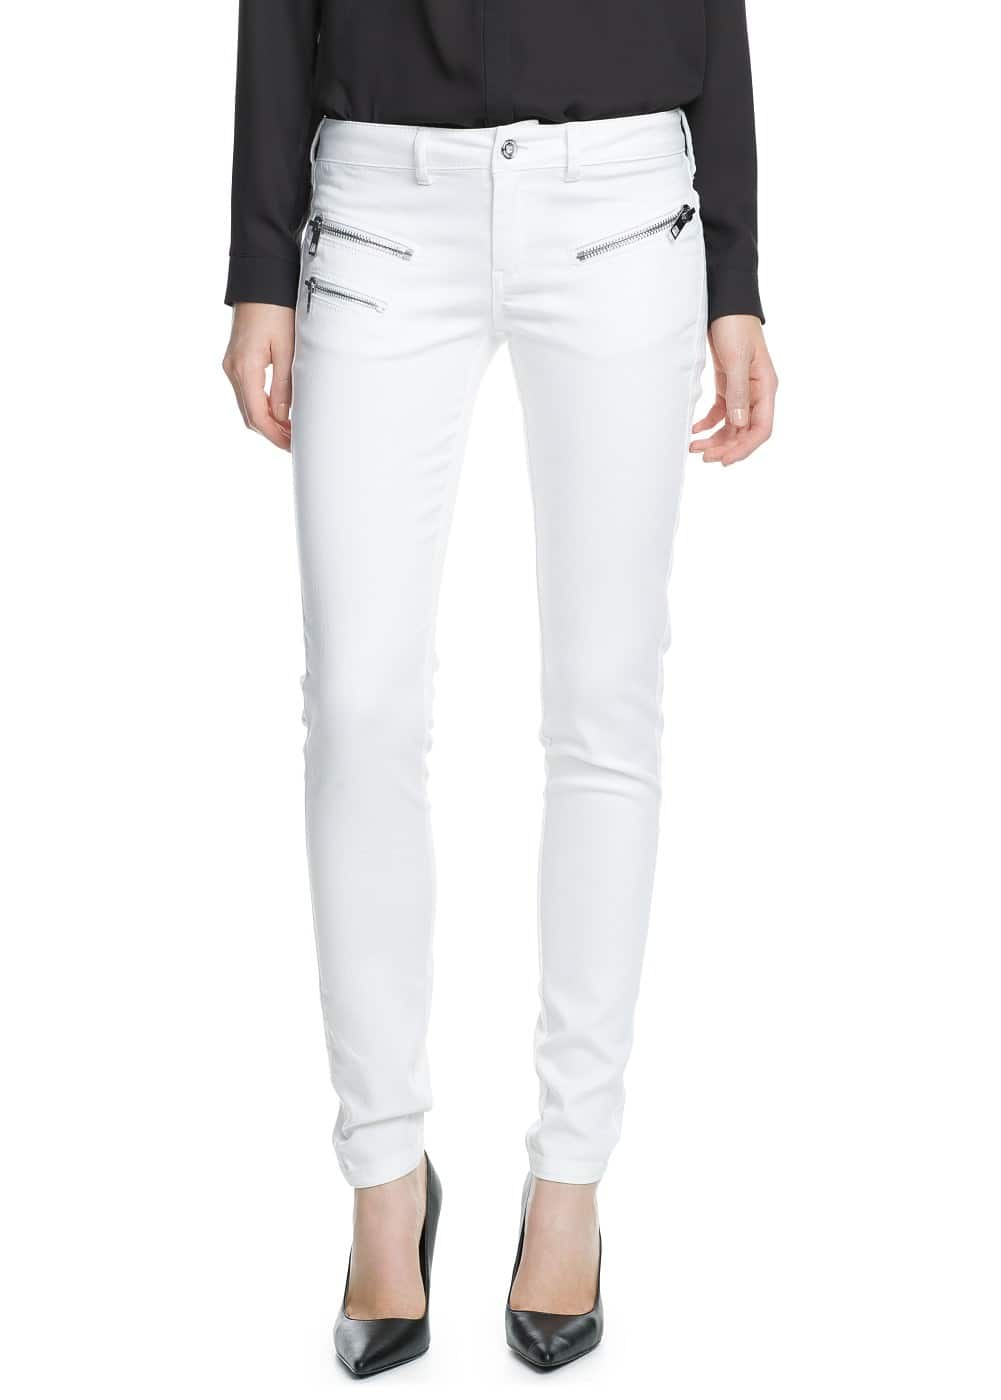 Zippy superskinny jeans